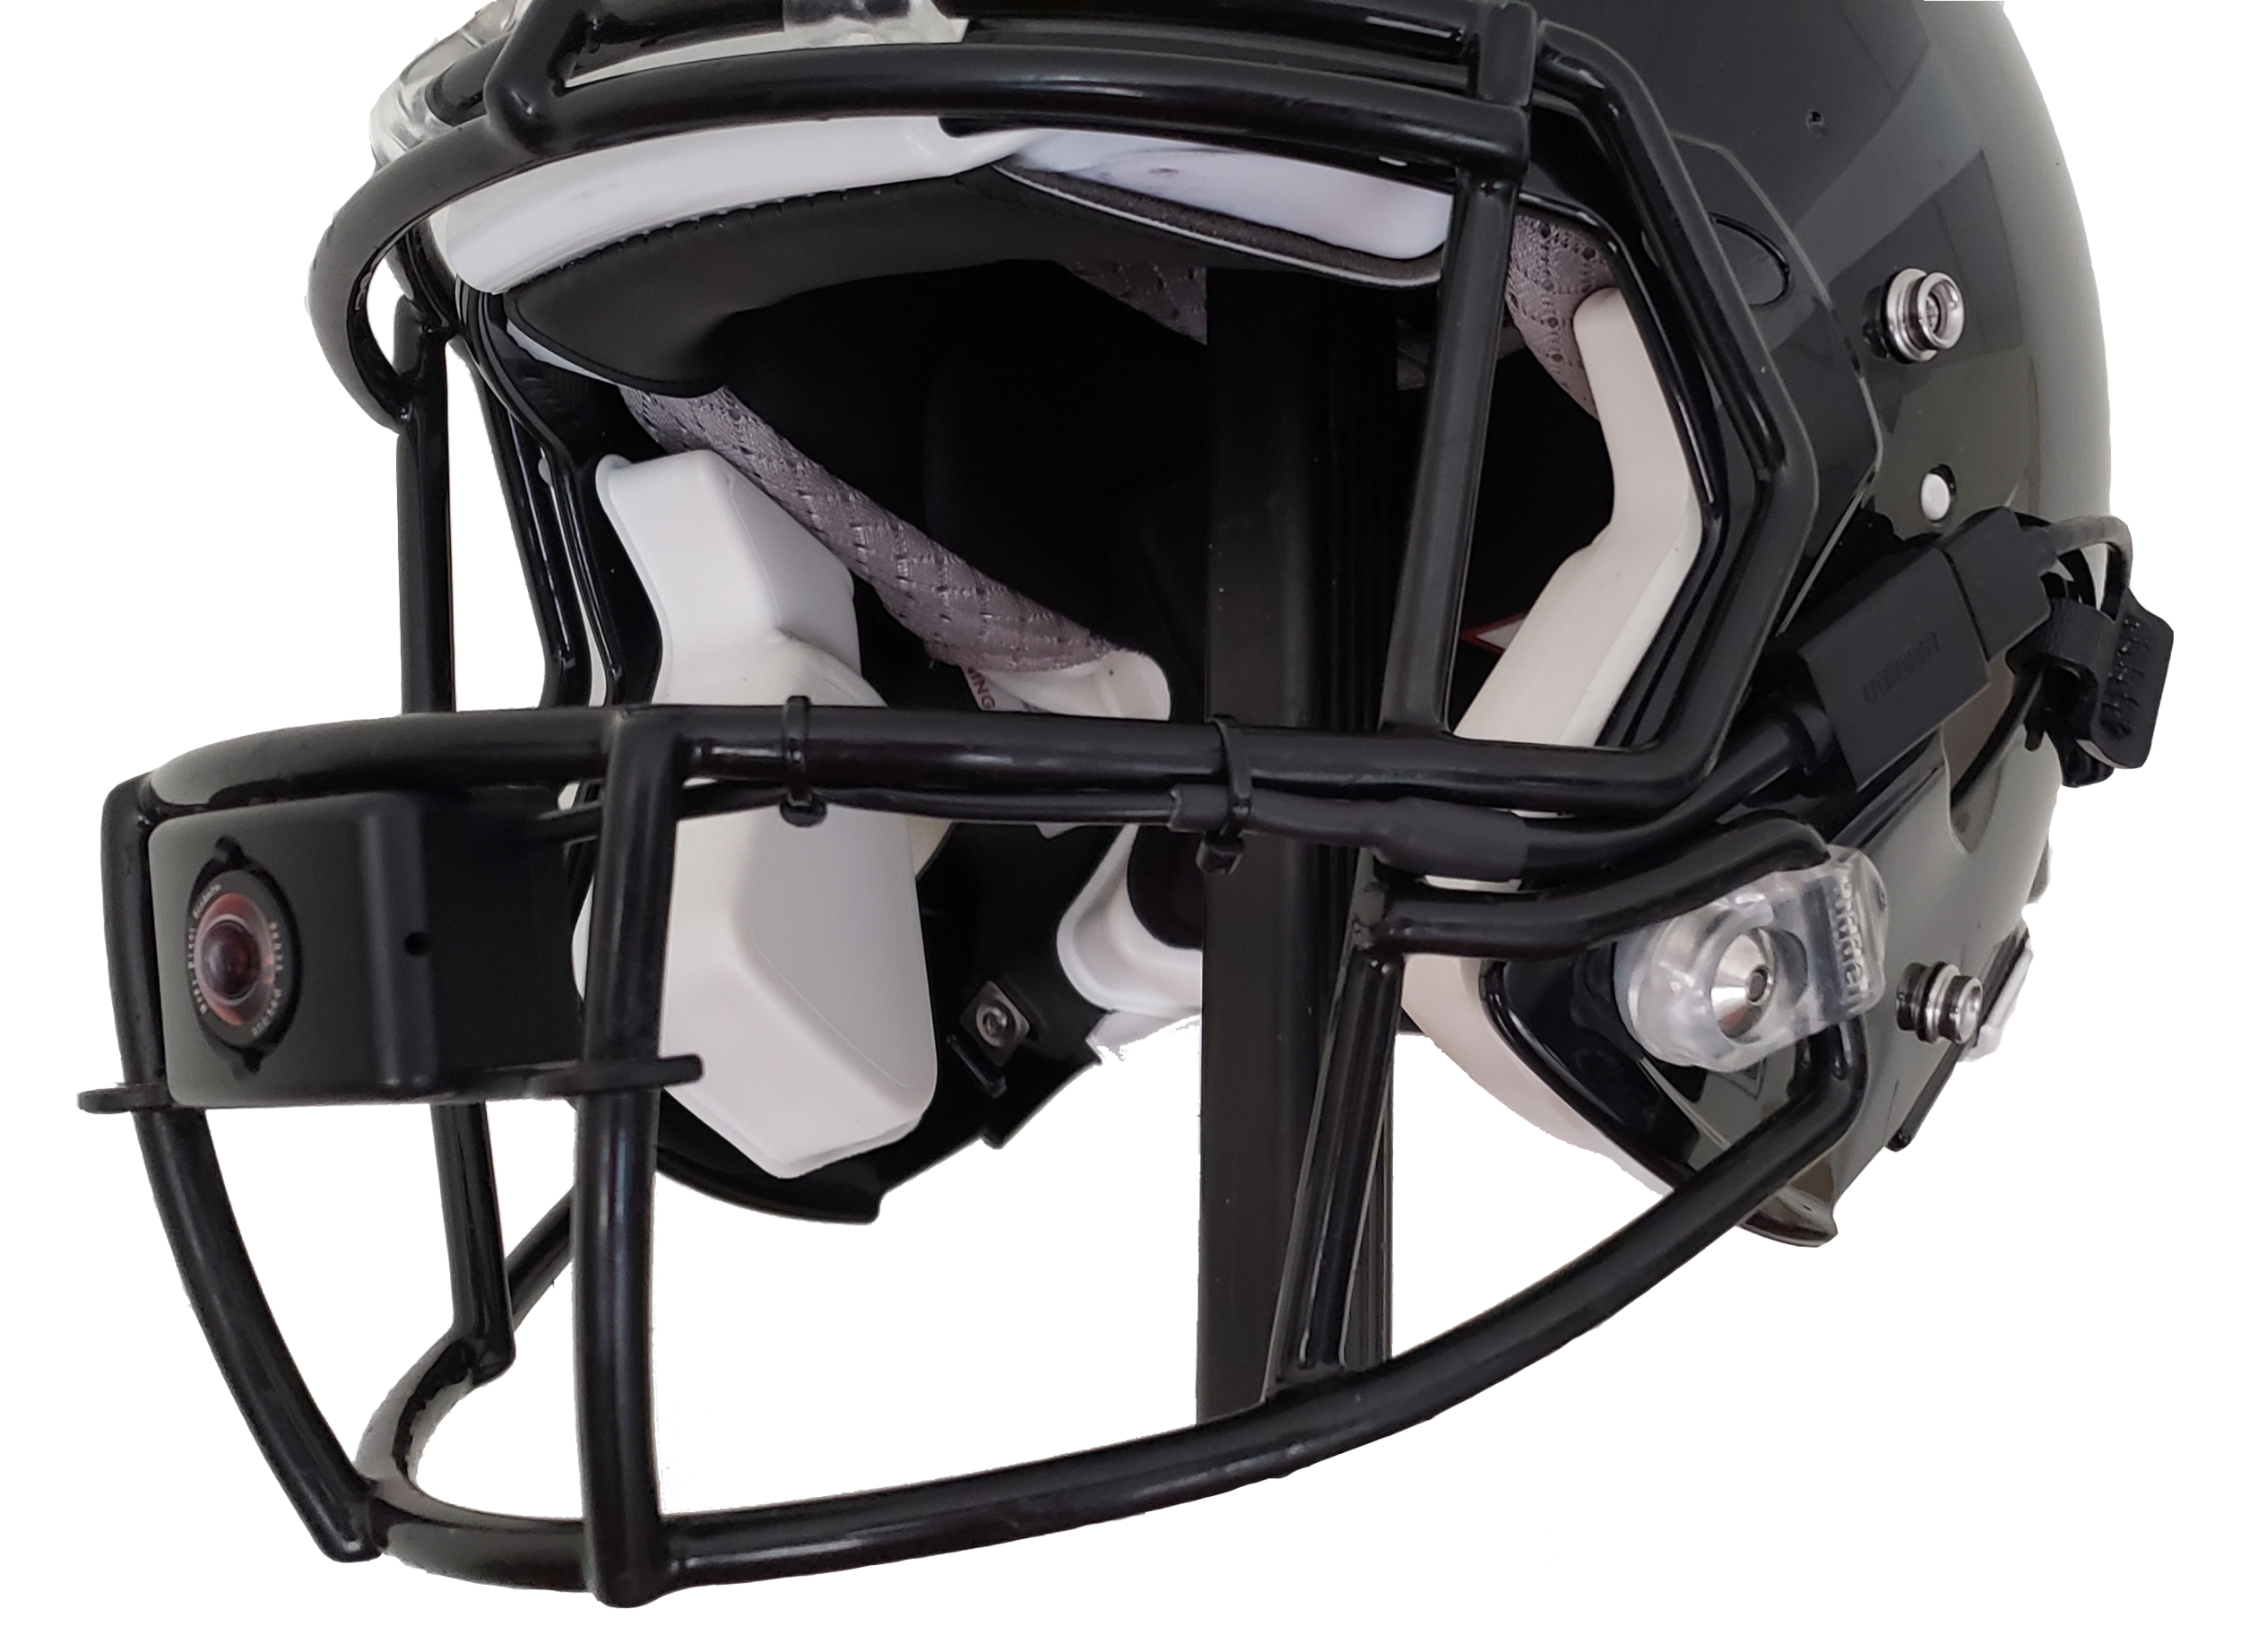 Facemask Camera seamlessly mounted to a helmet